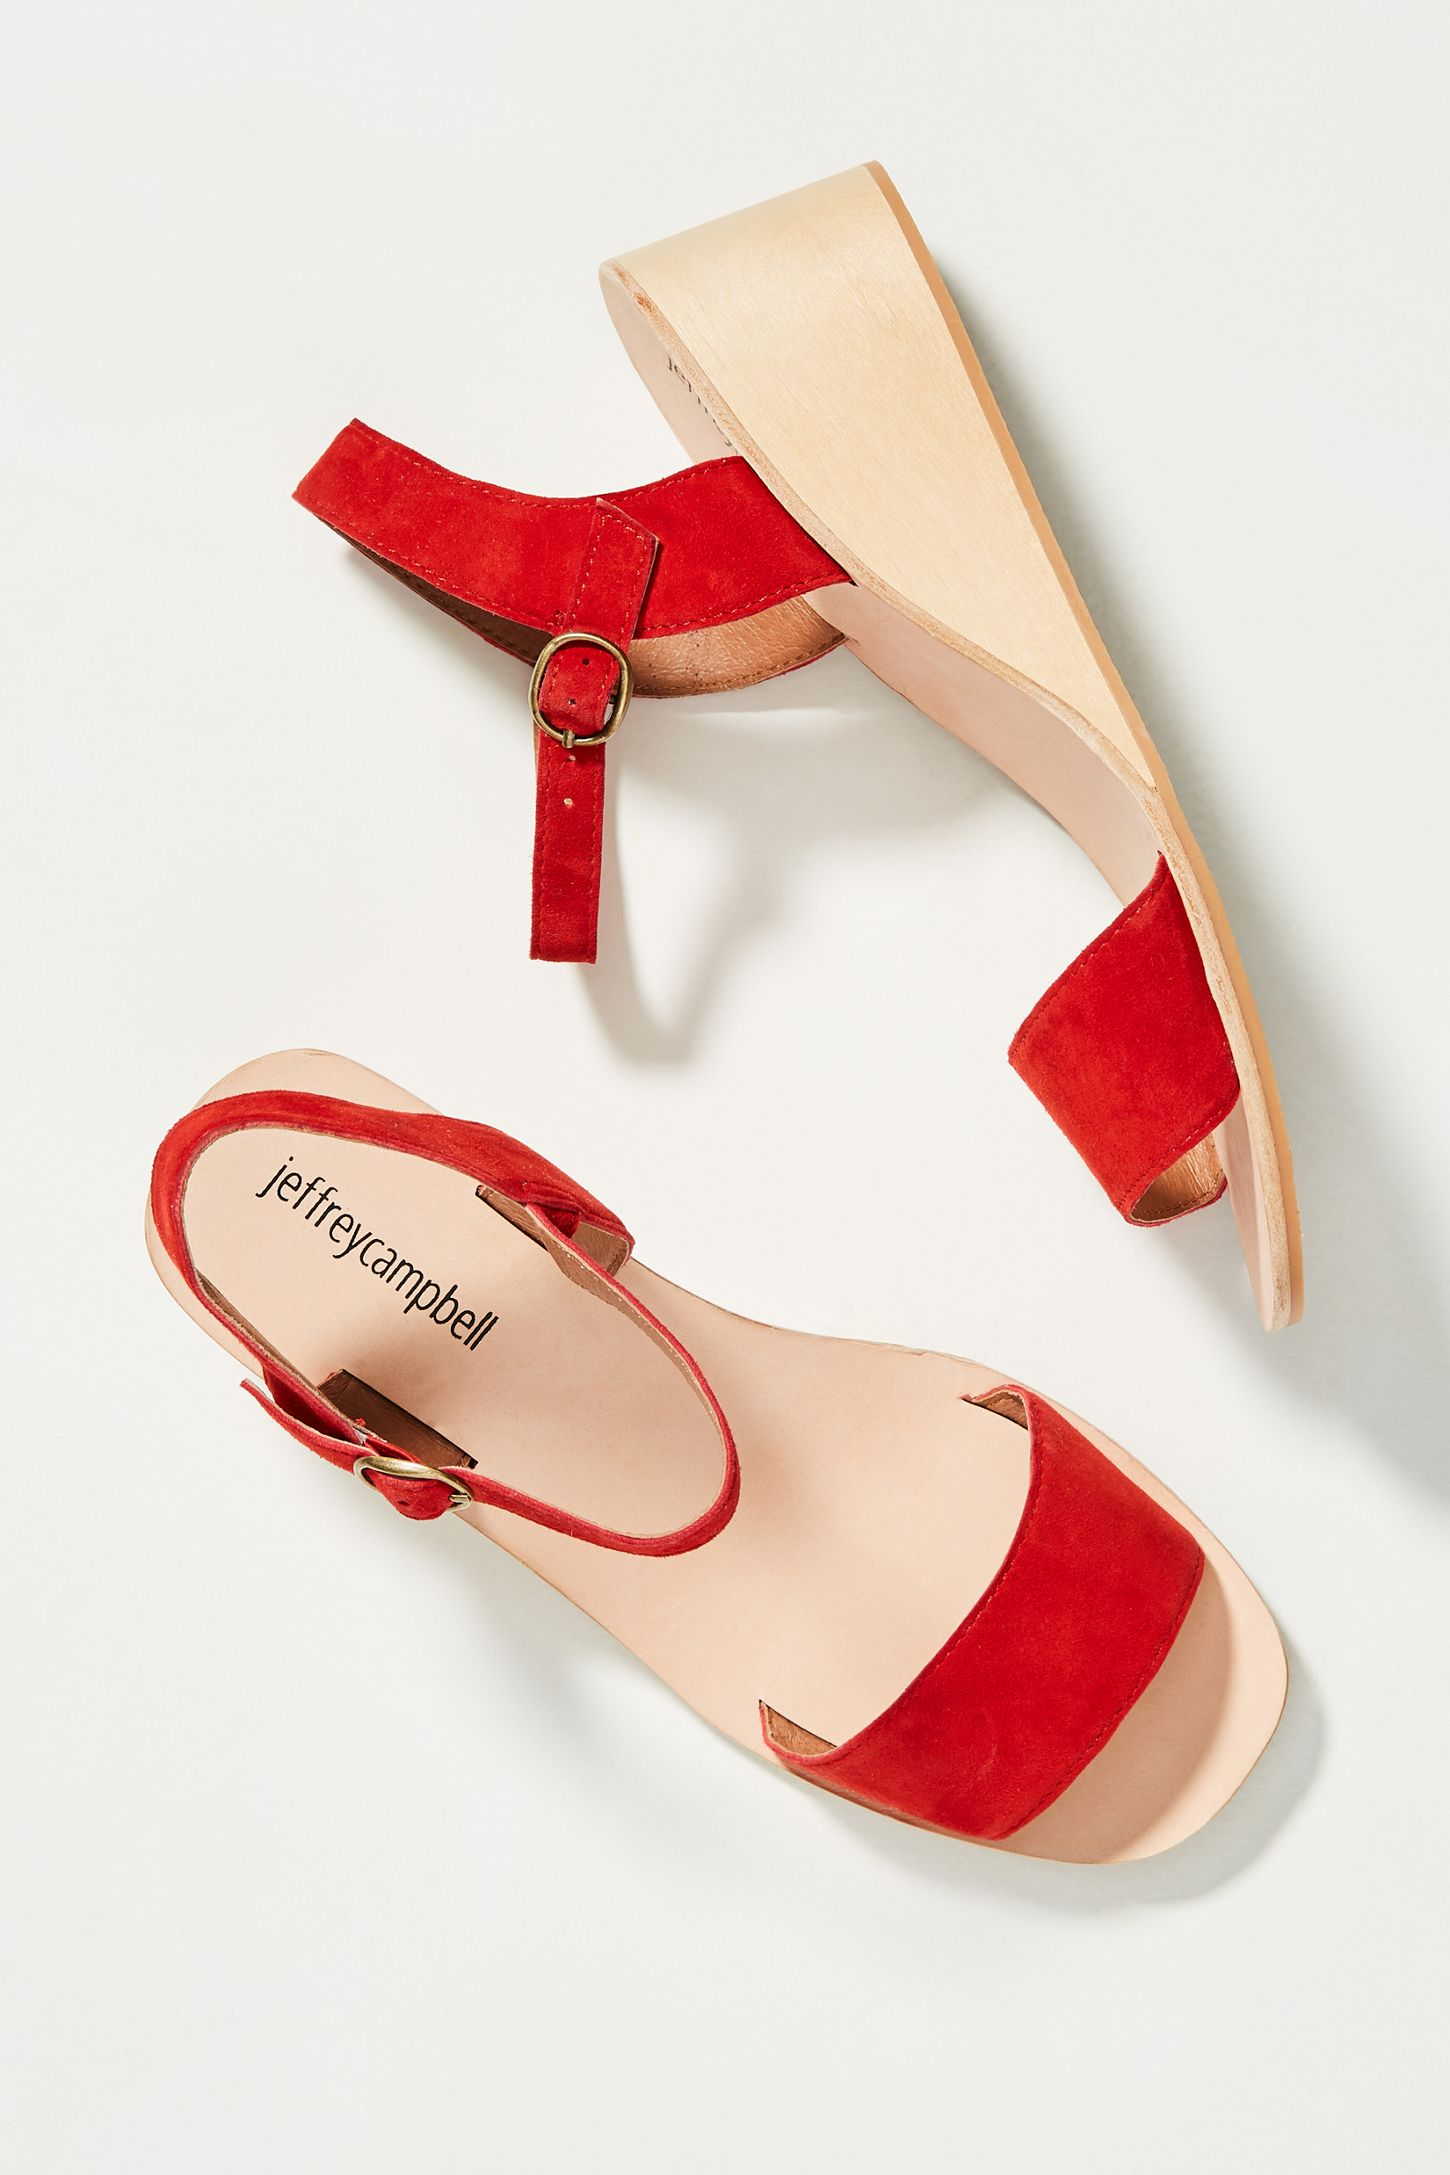 b77908db78b Jeffrey Campbell Brook Wooden Wedge Sandals. Tap image to zoom. Hover your  mouse over an image to zoom. Double Tap to Zoom